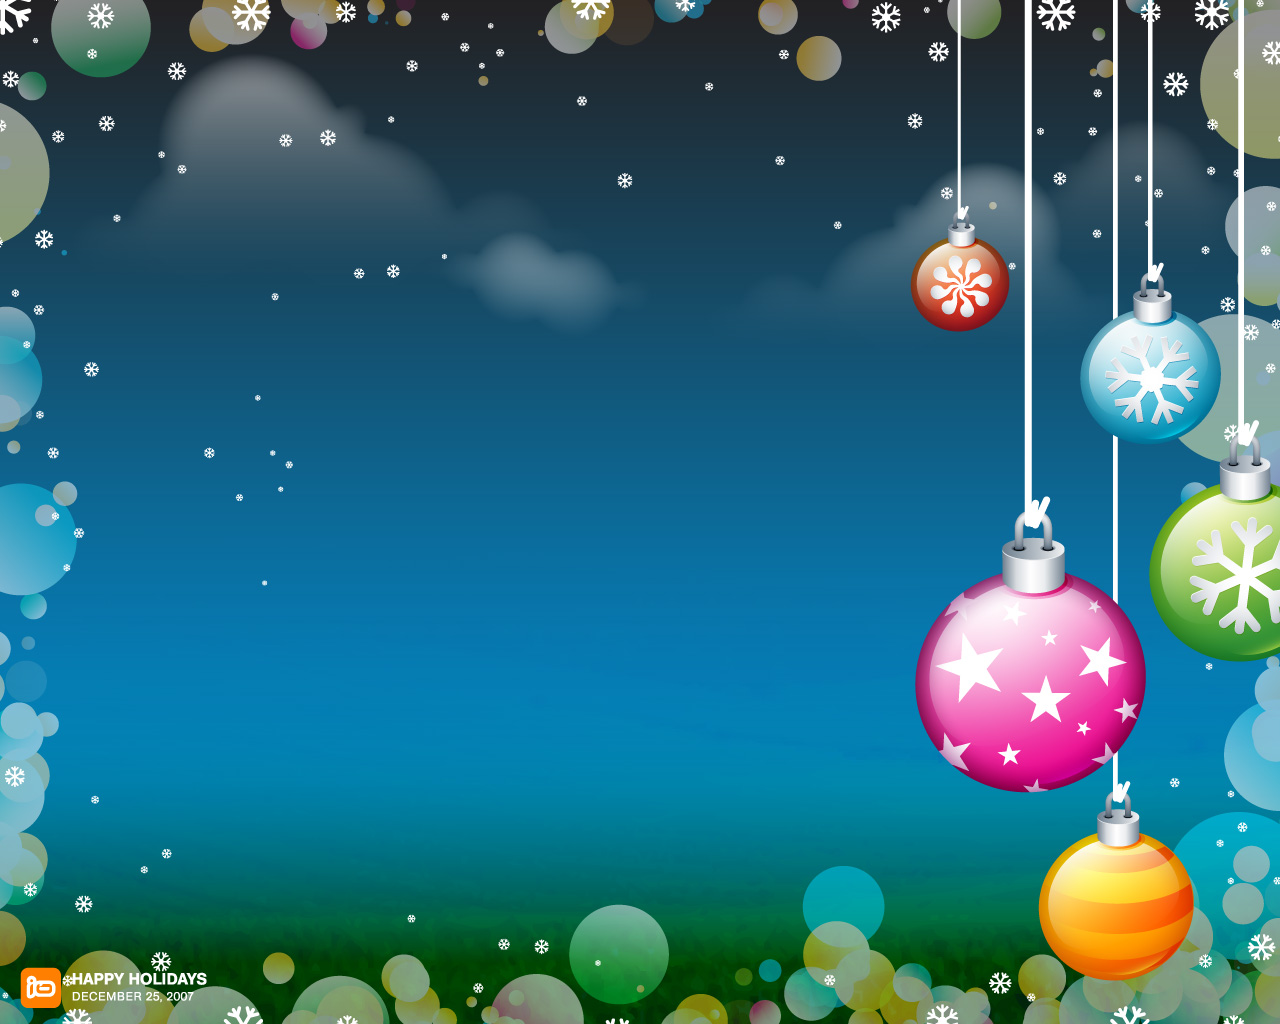 download Christmas Holiday Backgrounds Wallpapers Wallpapers 1280x1024